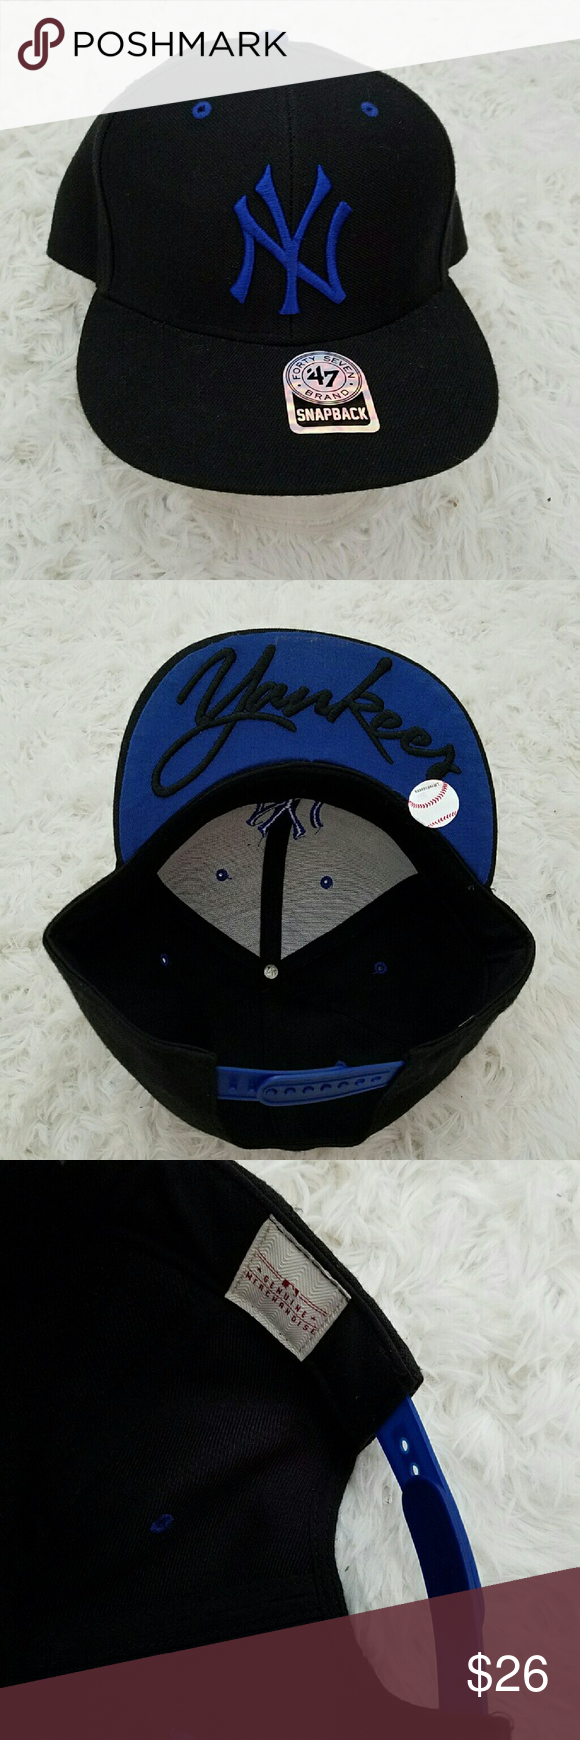 NEW YORK YANKEES SNAPBACK Genuine 47 Brand NBL New YORK Yankees Black and Blue snapback. In excellent condition except under the bill has sticky marks, see last photo.  Perfect gift. No fading or other stains. 47  Accessories Hats